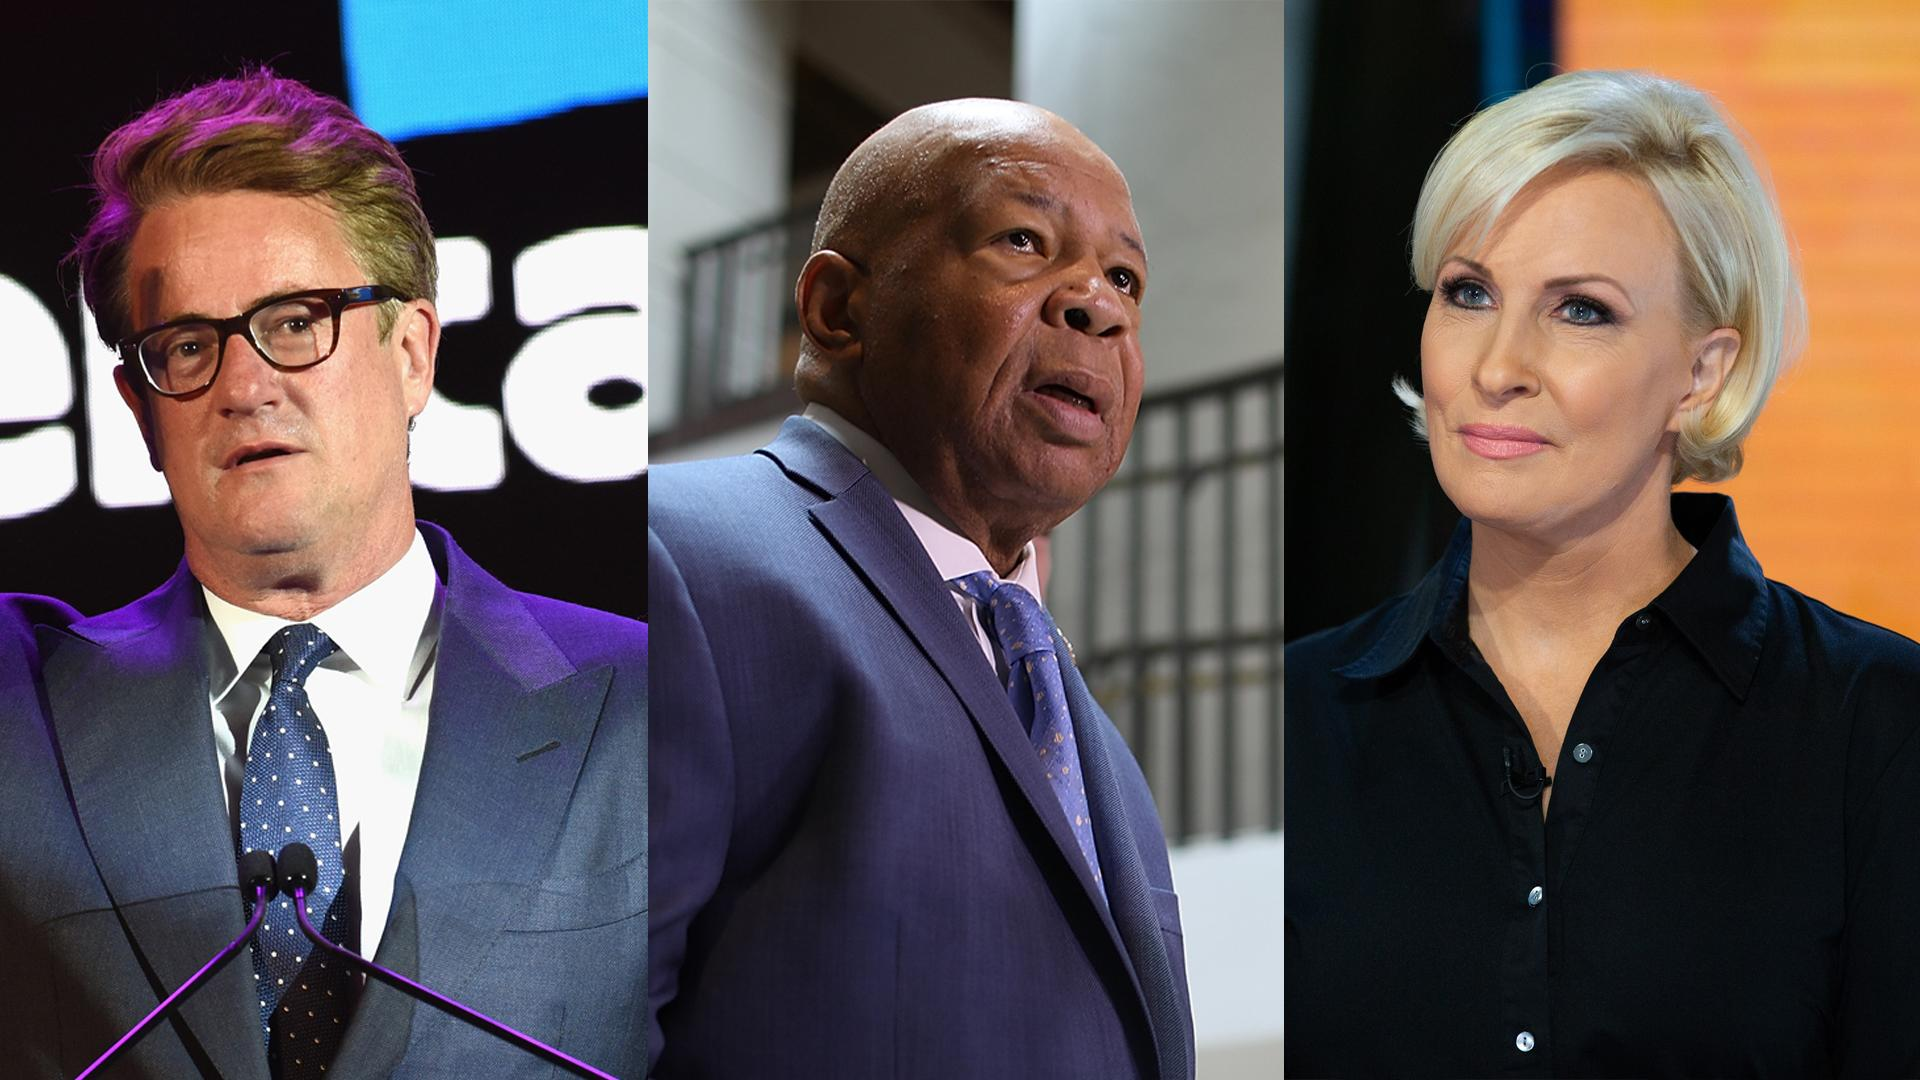 'Morning Joe' hosts remember Elijah Cummings, who married them: 'He was just perfect'